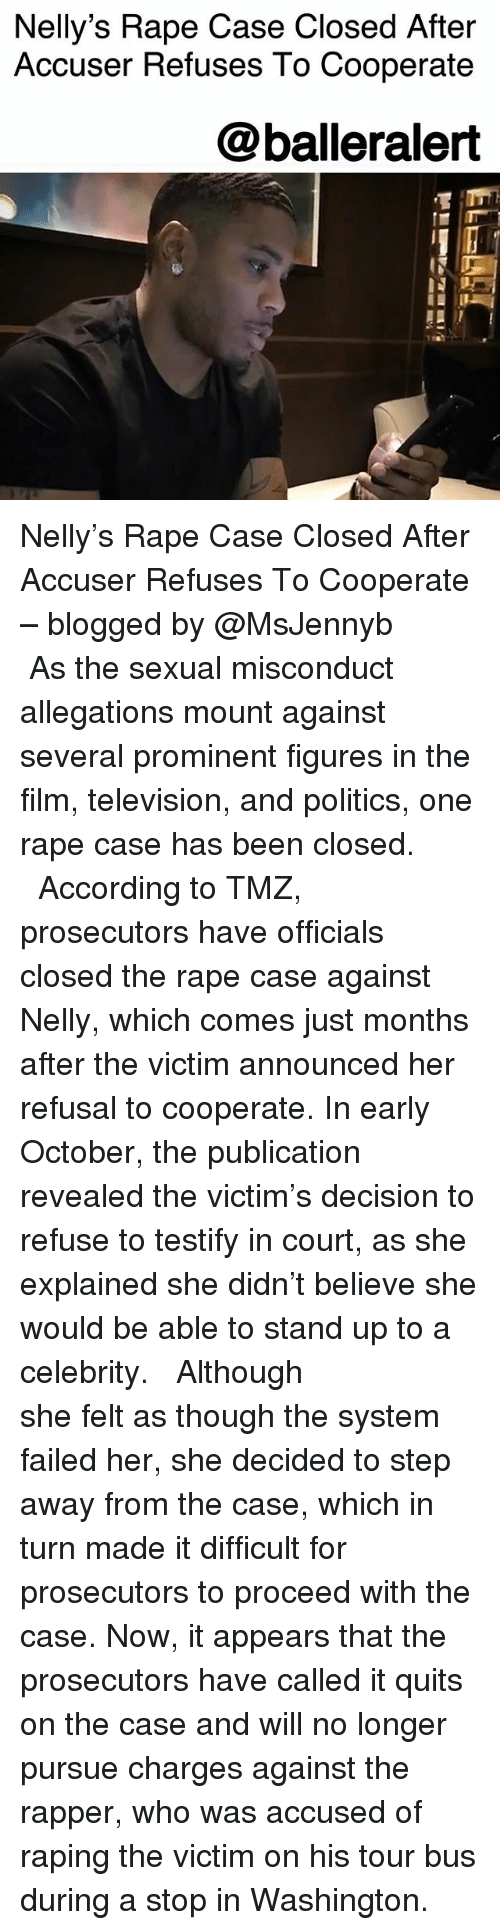 Memes, Nelly, and Politics: Nelly's Rape Case Closed After  Accuser Refuses To Cooperate  @balleralert Nelly's Rape Case Closed After Accuser Refuses To Cooperate – blogged by @MsJennyb ⠀⠀⠀⠀⠀⠀⠀ ⠀⠀⠀⠀⠀⠀⠀ As the sexual misconduct allegations mount against several prominent figures in the film, television, and politics, one rape case has been closed. ⠀⠀⠀⠀⠀⠀⠀ ⠀⠀⠀⠀⠀⠀⠀ According to TMZ, prosecutors have officials closed the rape case against Nelly, which comes just months after the victim announced her refusal to cooperate. In early October, the publication revealed the victim's decision to refuse to testify in court, as she explained she didn't believe she would be able to stand up to a celebrity. ⠀⠀⠀⠀⠀⠀⠀ ⠀⠀⠀⠀⠀⠀⠀ Although she felt as though the system failed her, she decided to step away from the case, which in turn made it difficult for prosecutors to proceed with the case. Now, it appears that the prosecutors have called it quits on the case and will no longer pursue charges against the rapper, who was accused of raping the victim on his tour bus during a stop in Washington.